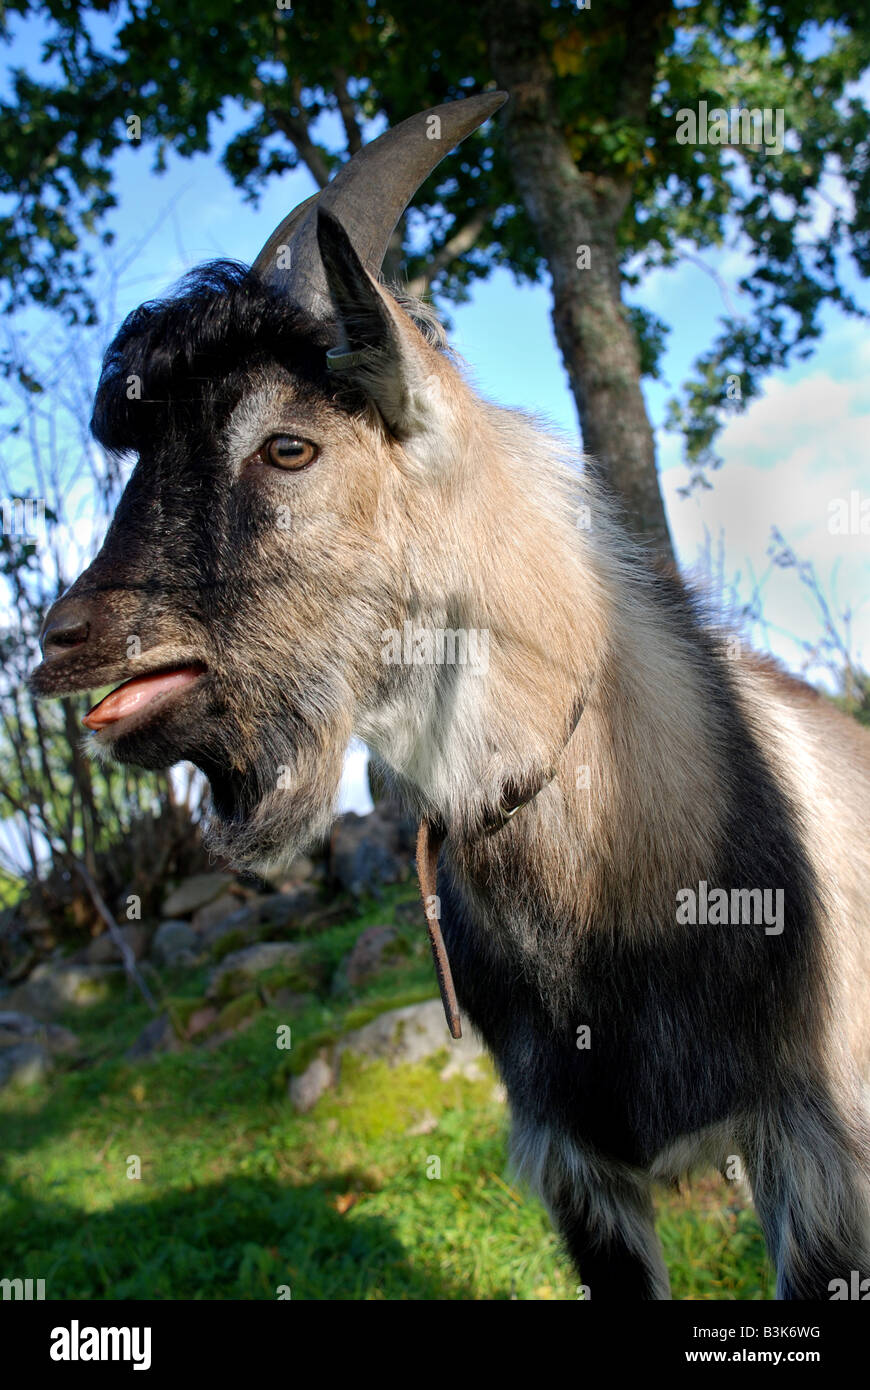 Goat Buck screaming - Stock Image